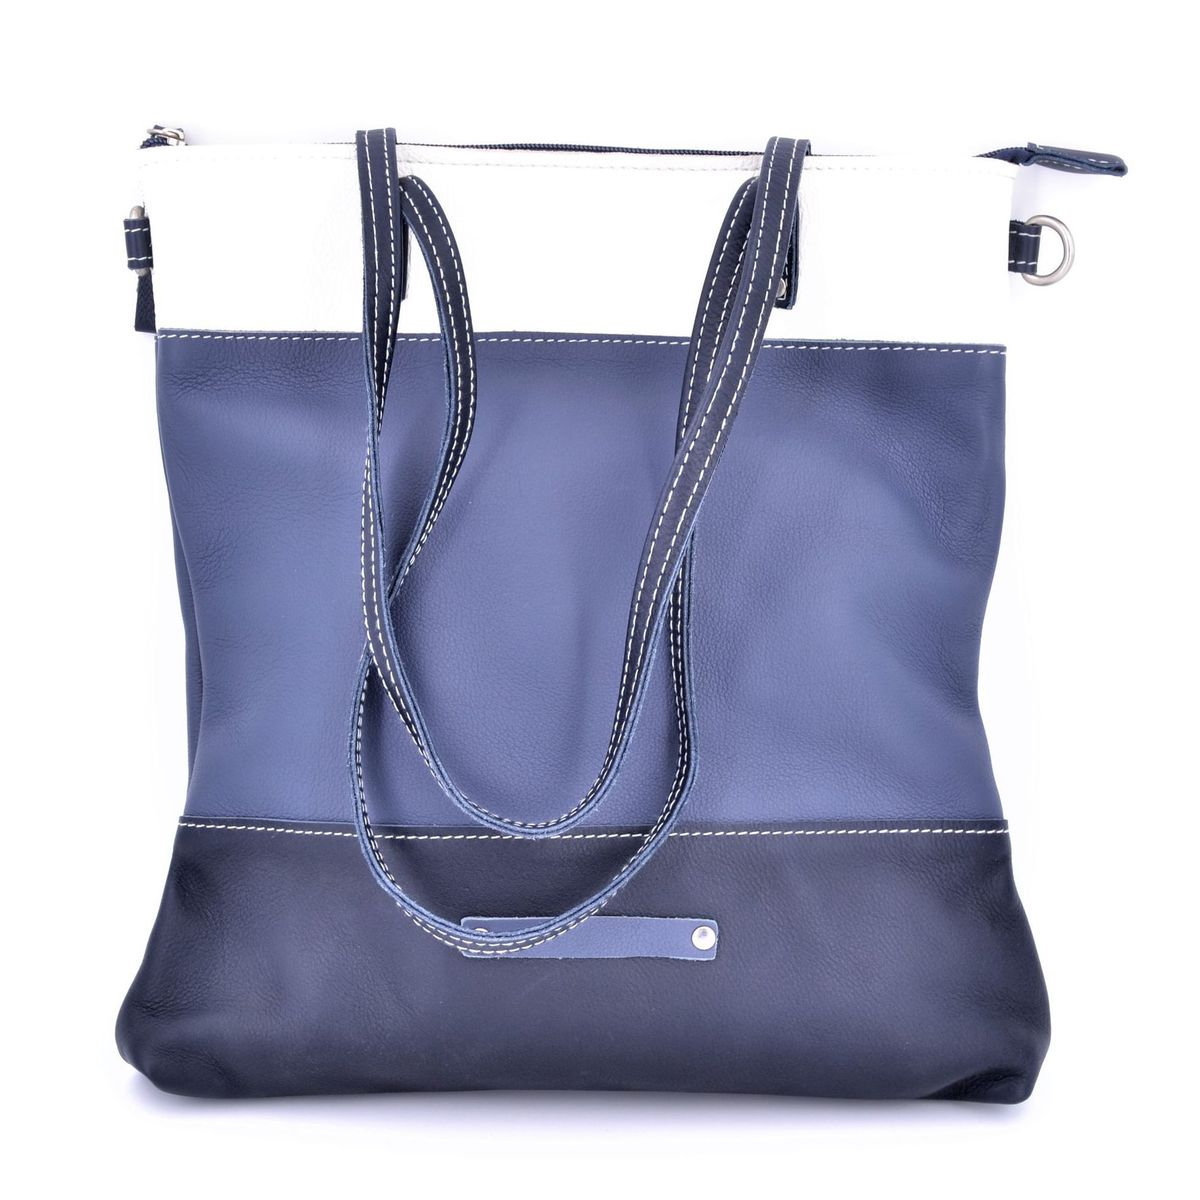 3 colors leather bag with shoulder strap 2 Blue BRASS Workshop